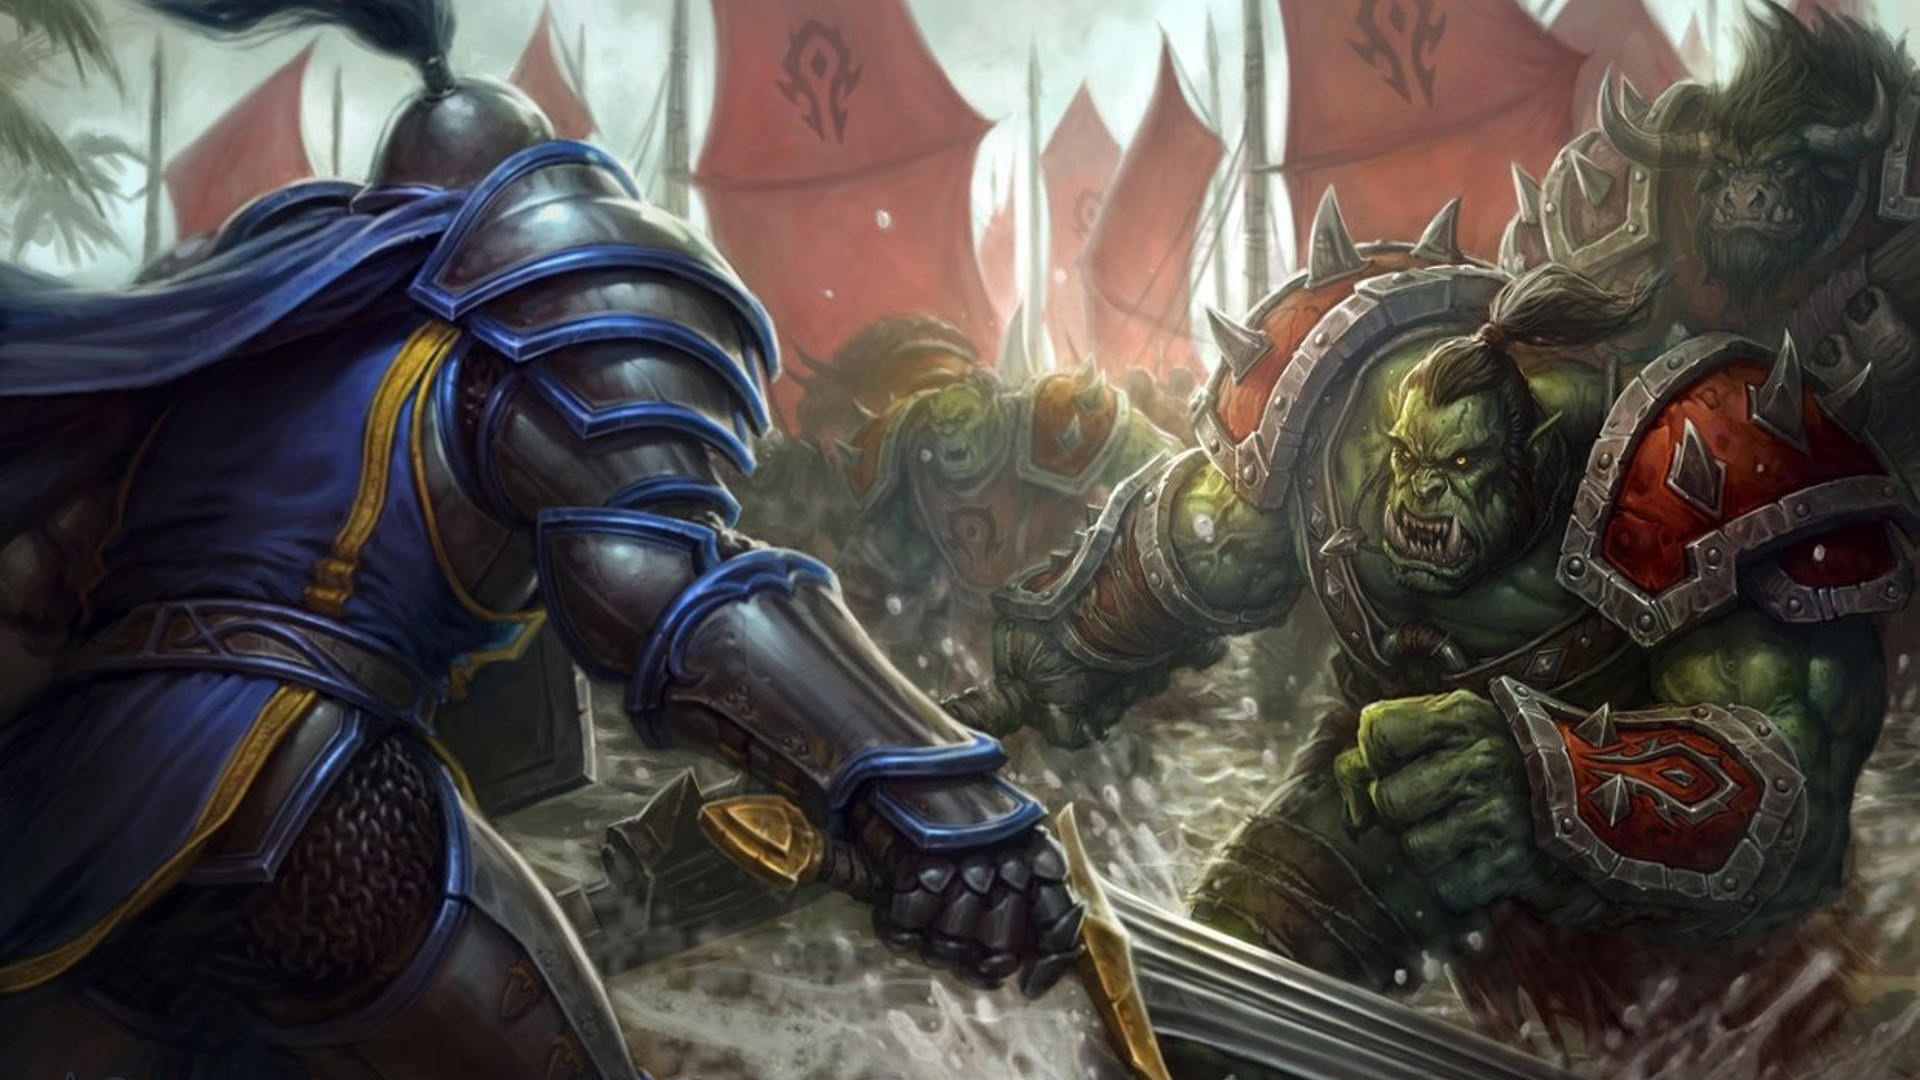 World of Warcraft might let Alliance and Horde raid together someday